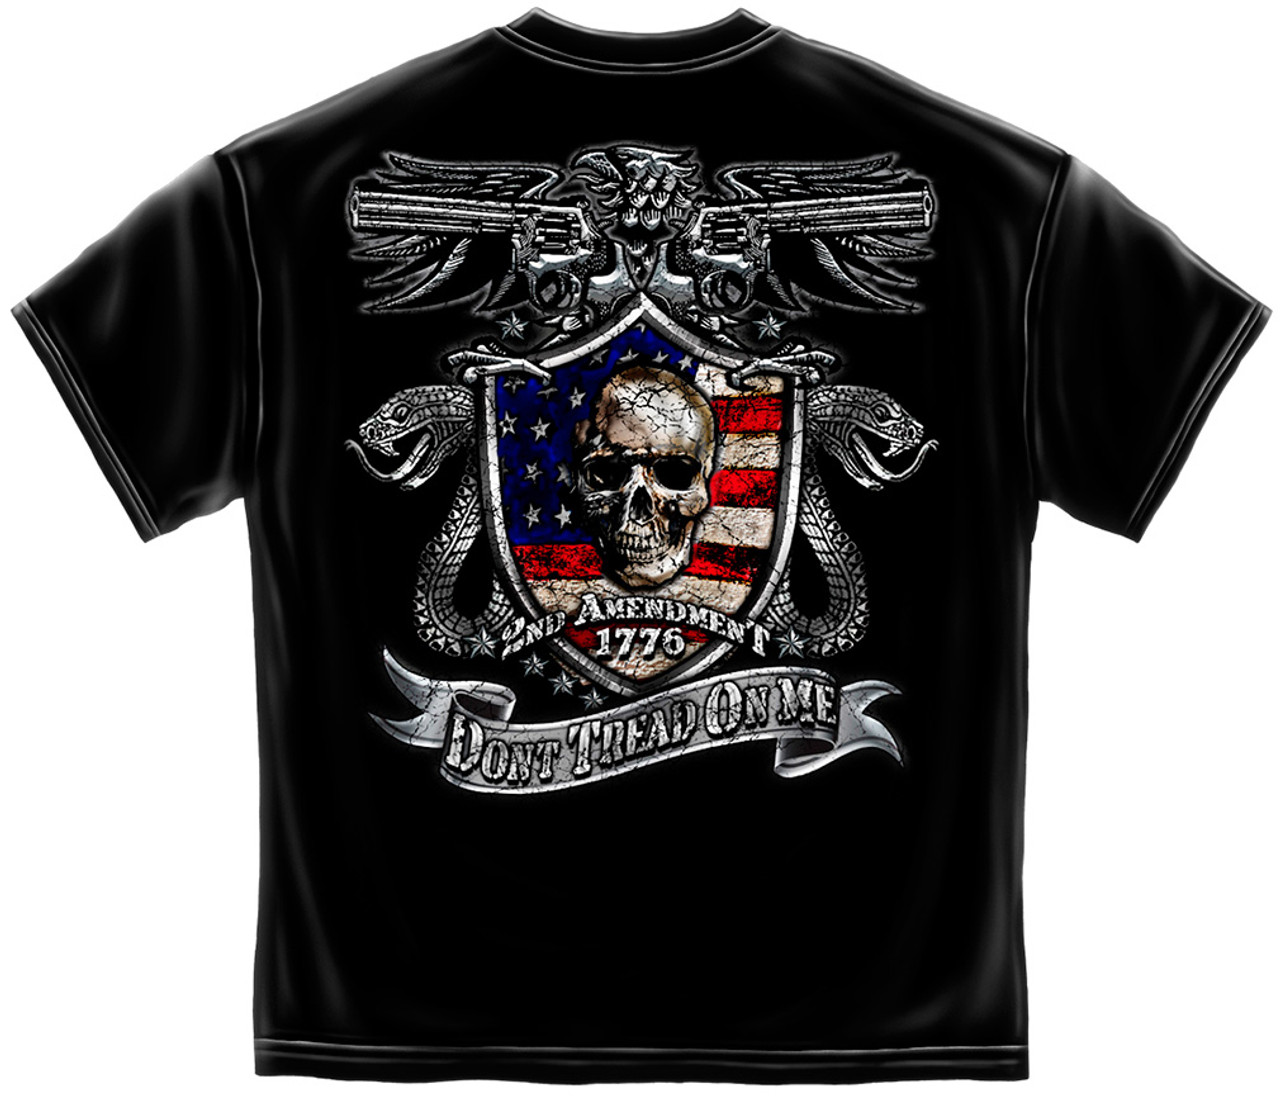 **(NEW-LICENSED-2ND-AMENDMENT-1776 & DON'T-TREAD-ON-ME/DUAL-GUNS & SNAKES,NICE-CUSTOM-DETAILED-GRAPHIC-PRINTED/PREMIUM-DOUBLE-SIDED-TEES)**